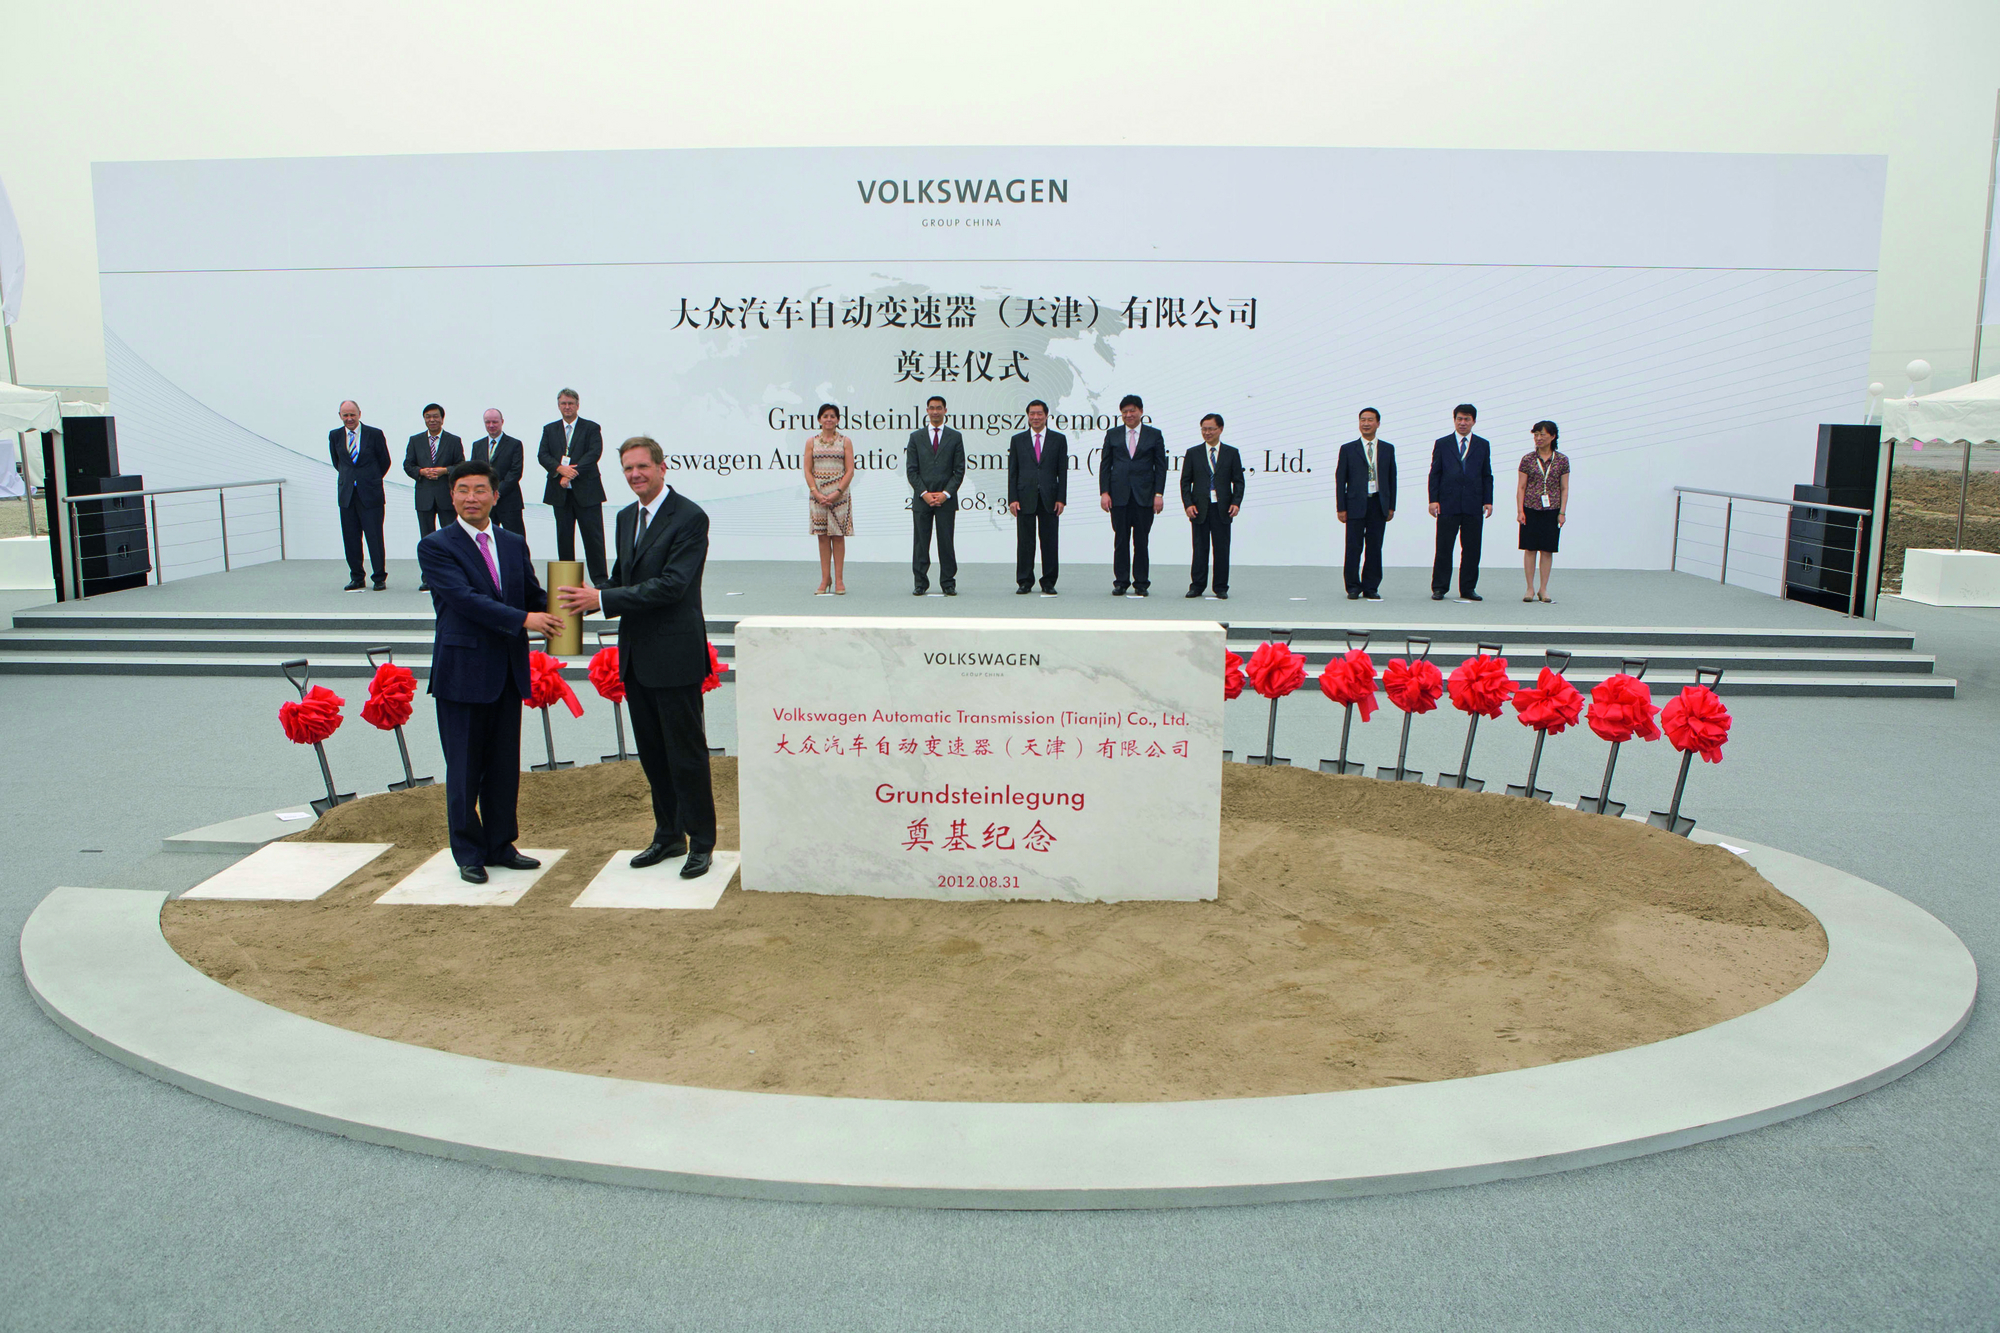 volkswagen group in china essay Volkswagen ag – porter's five forces analysis november 8, 2014 uncategorized willzhang it is possible for the volkswagen group to hold a considerable market.